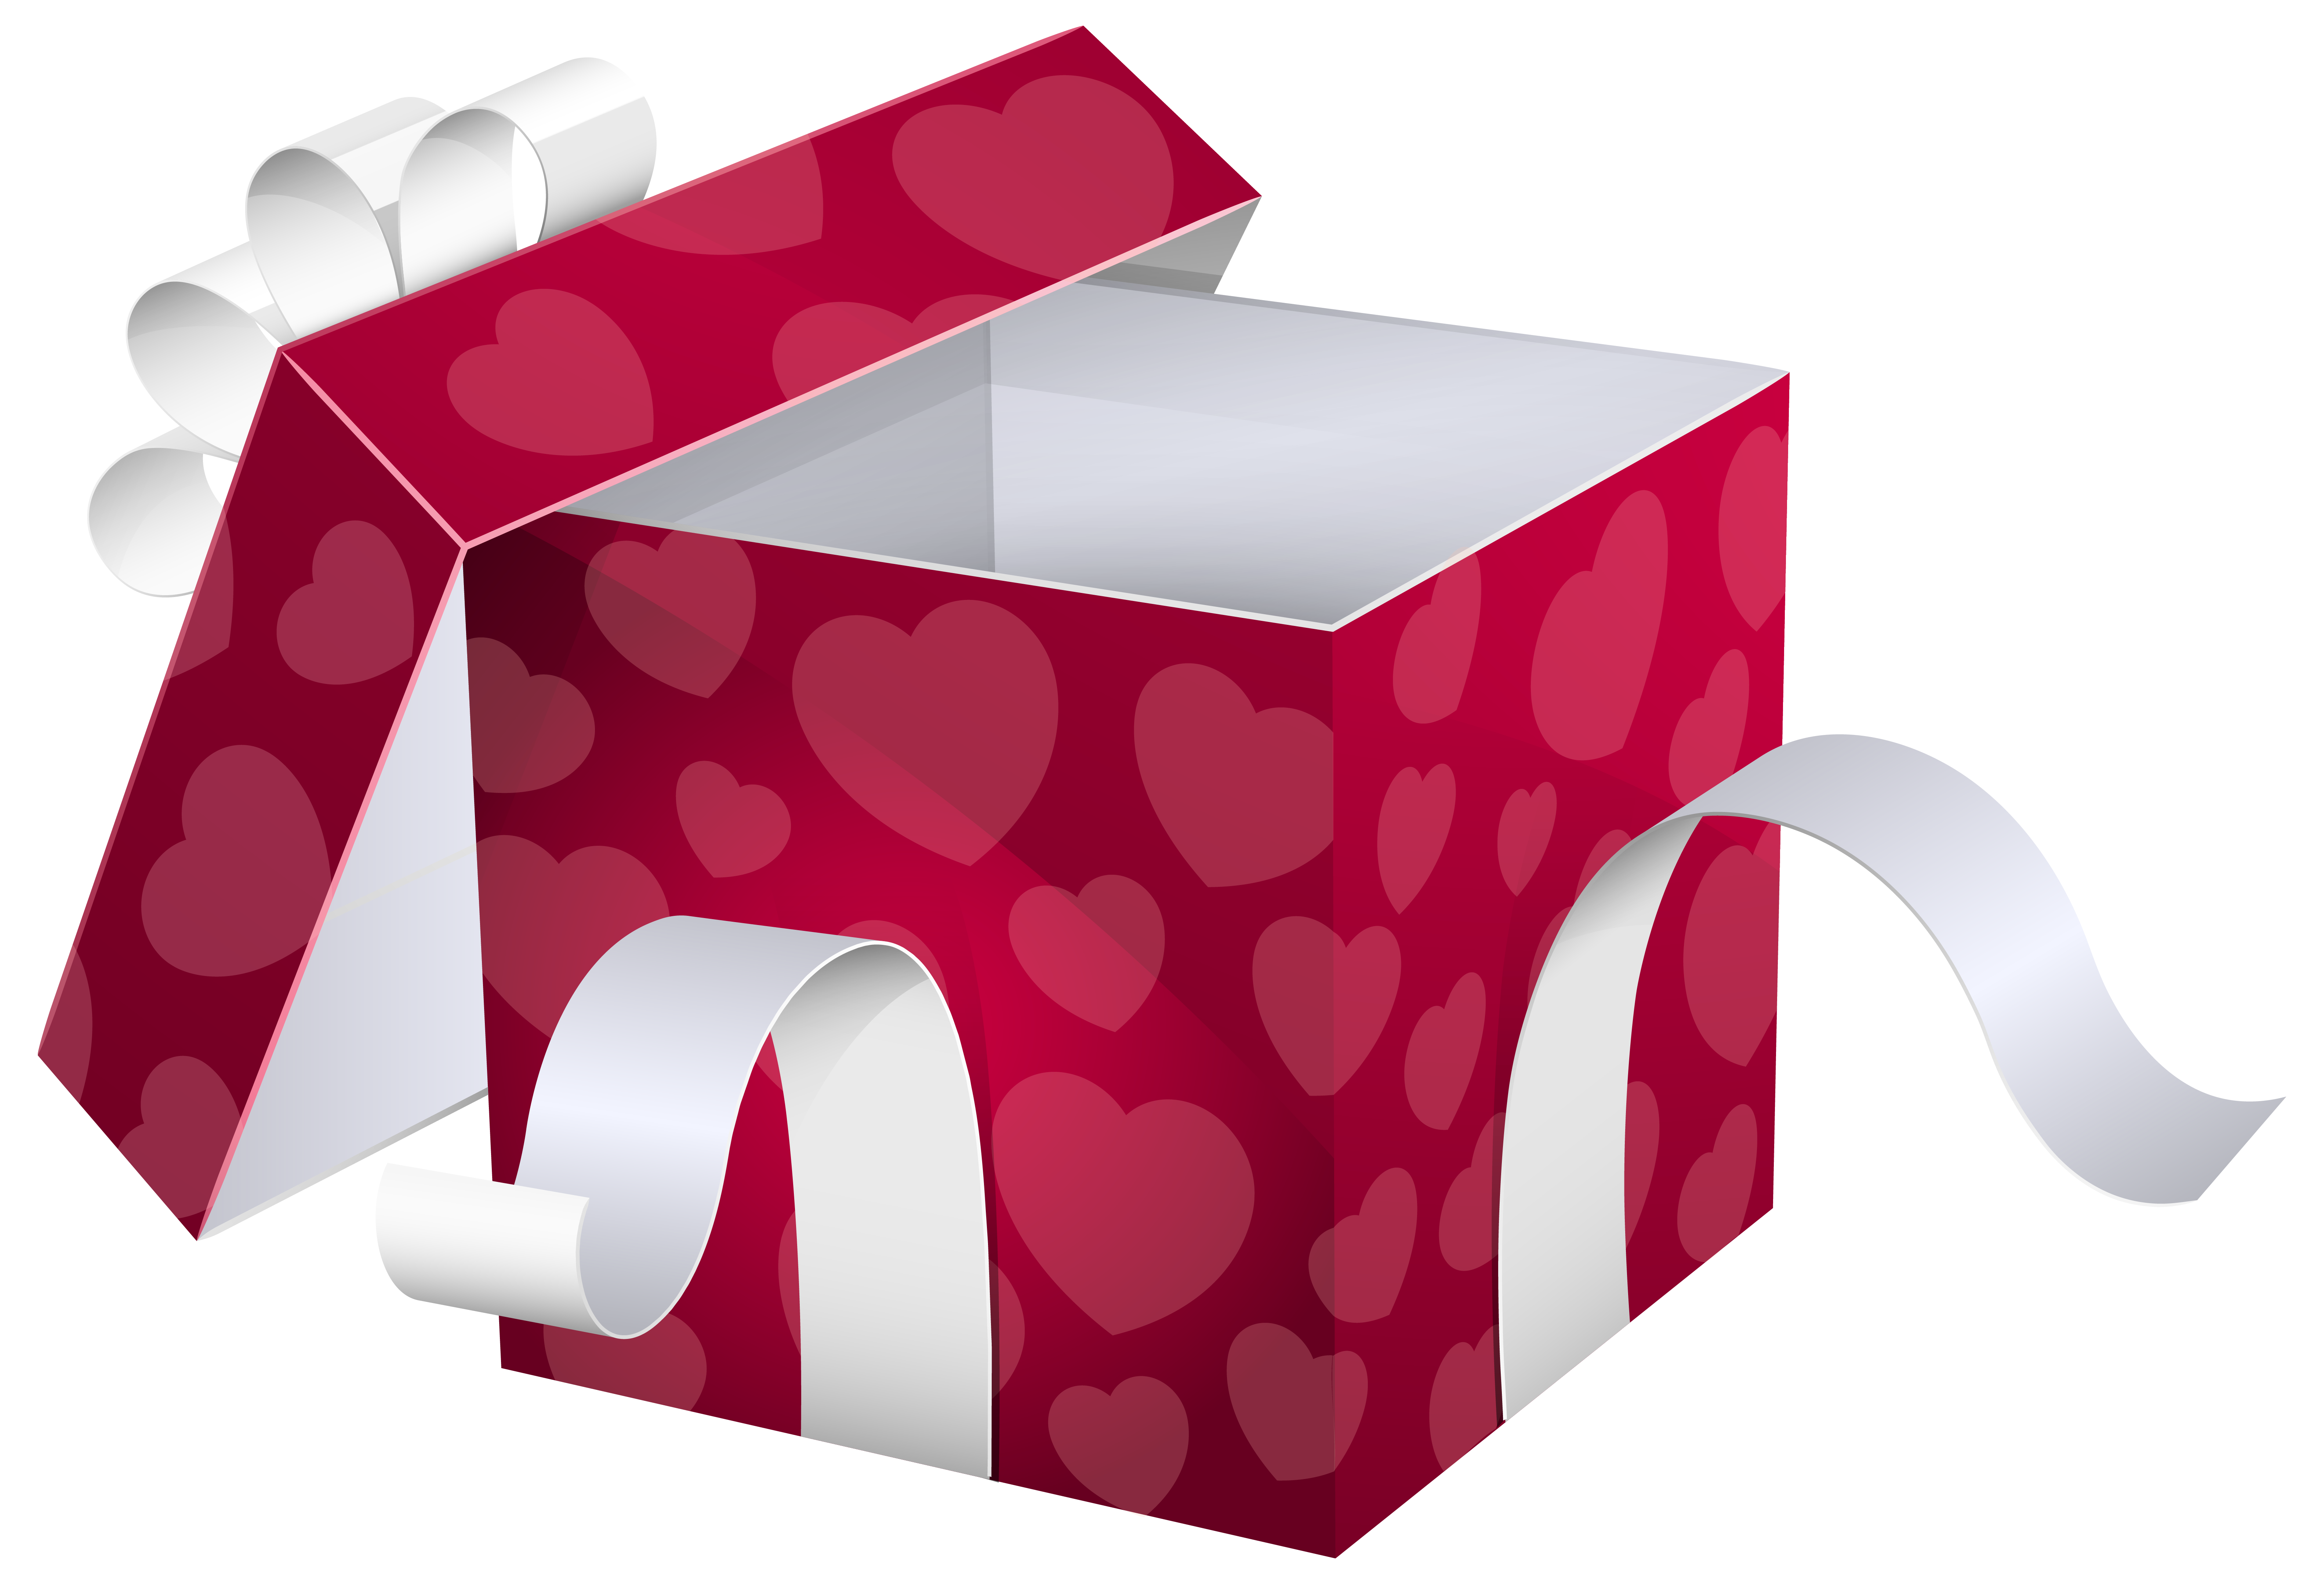 Box clipart quality. Open pink gift png